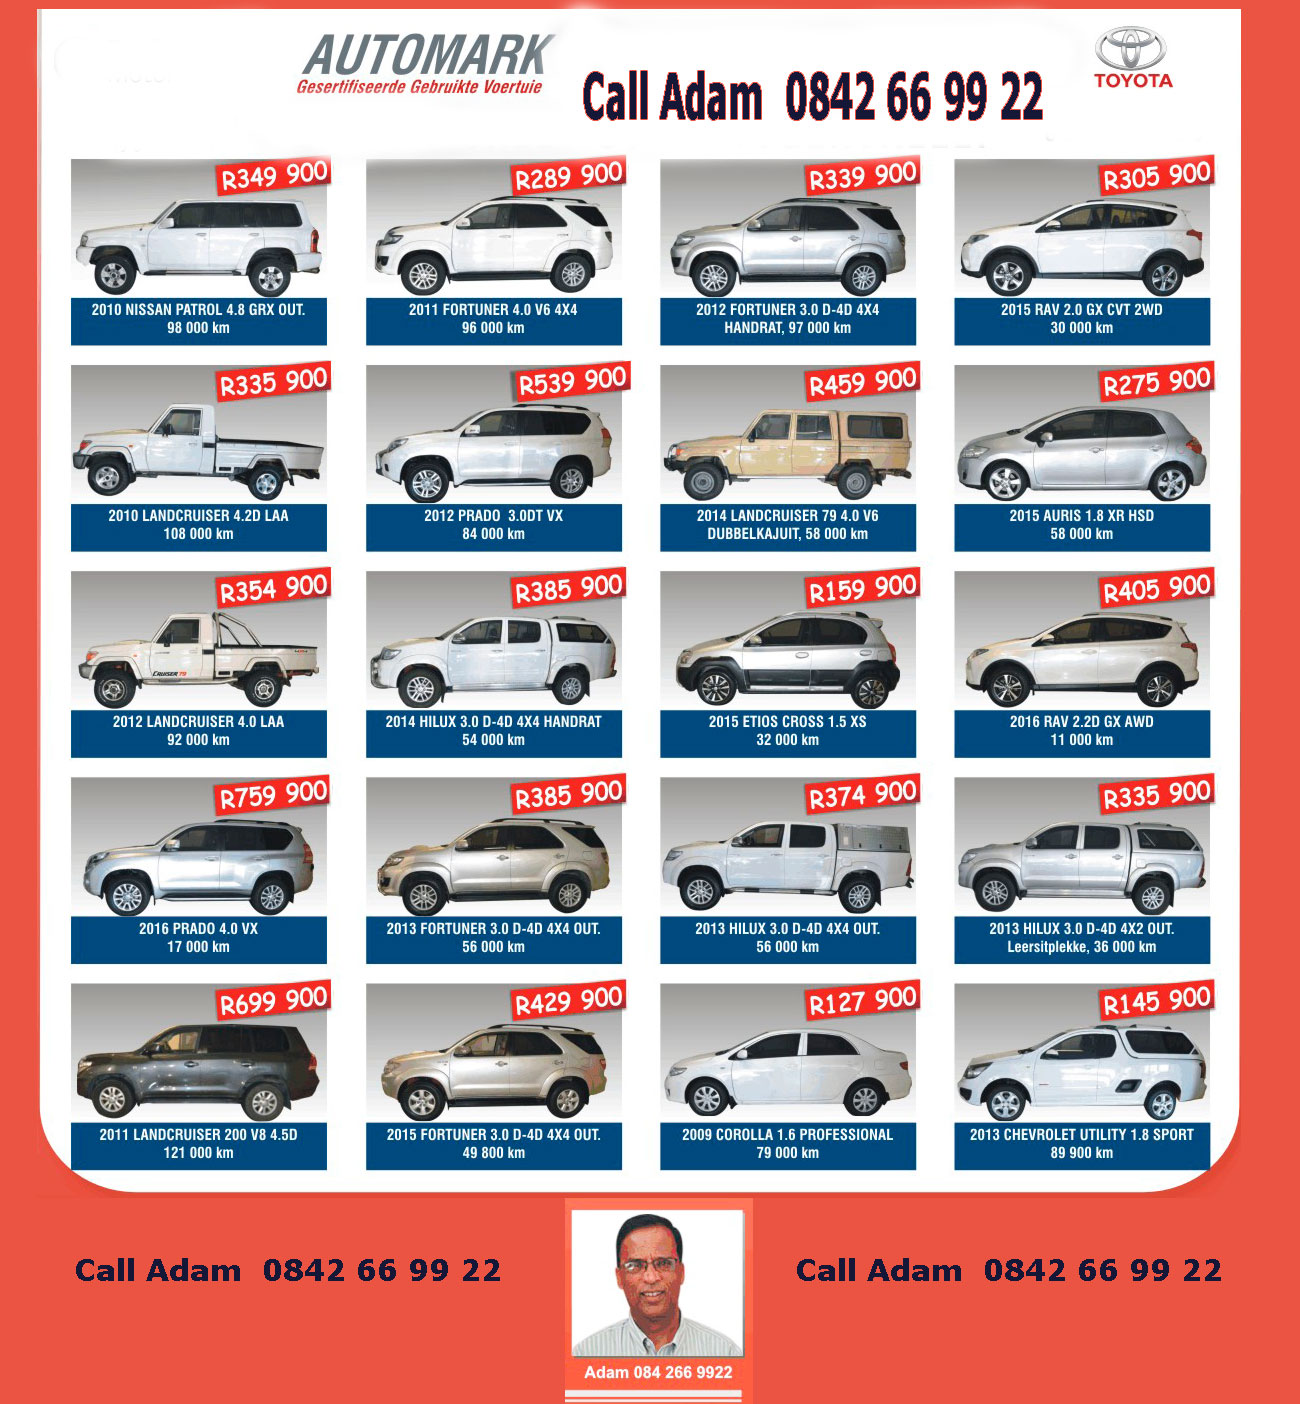 Gumtree Used Vehicles for Sale Cars & OLX cars and bakkies in Cape ...